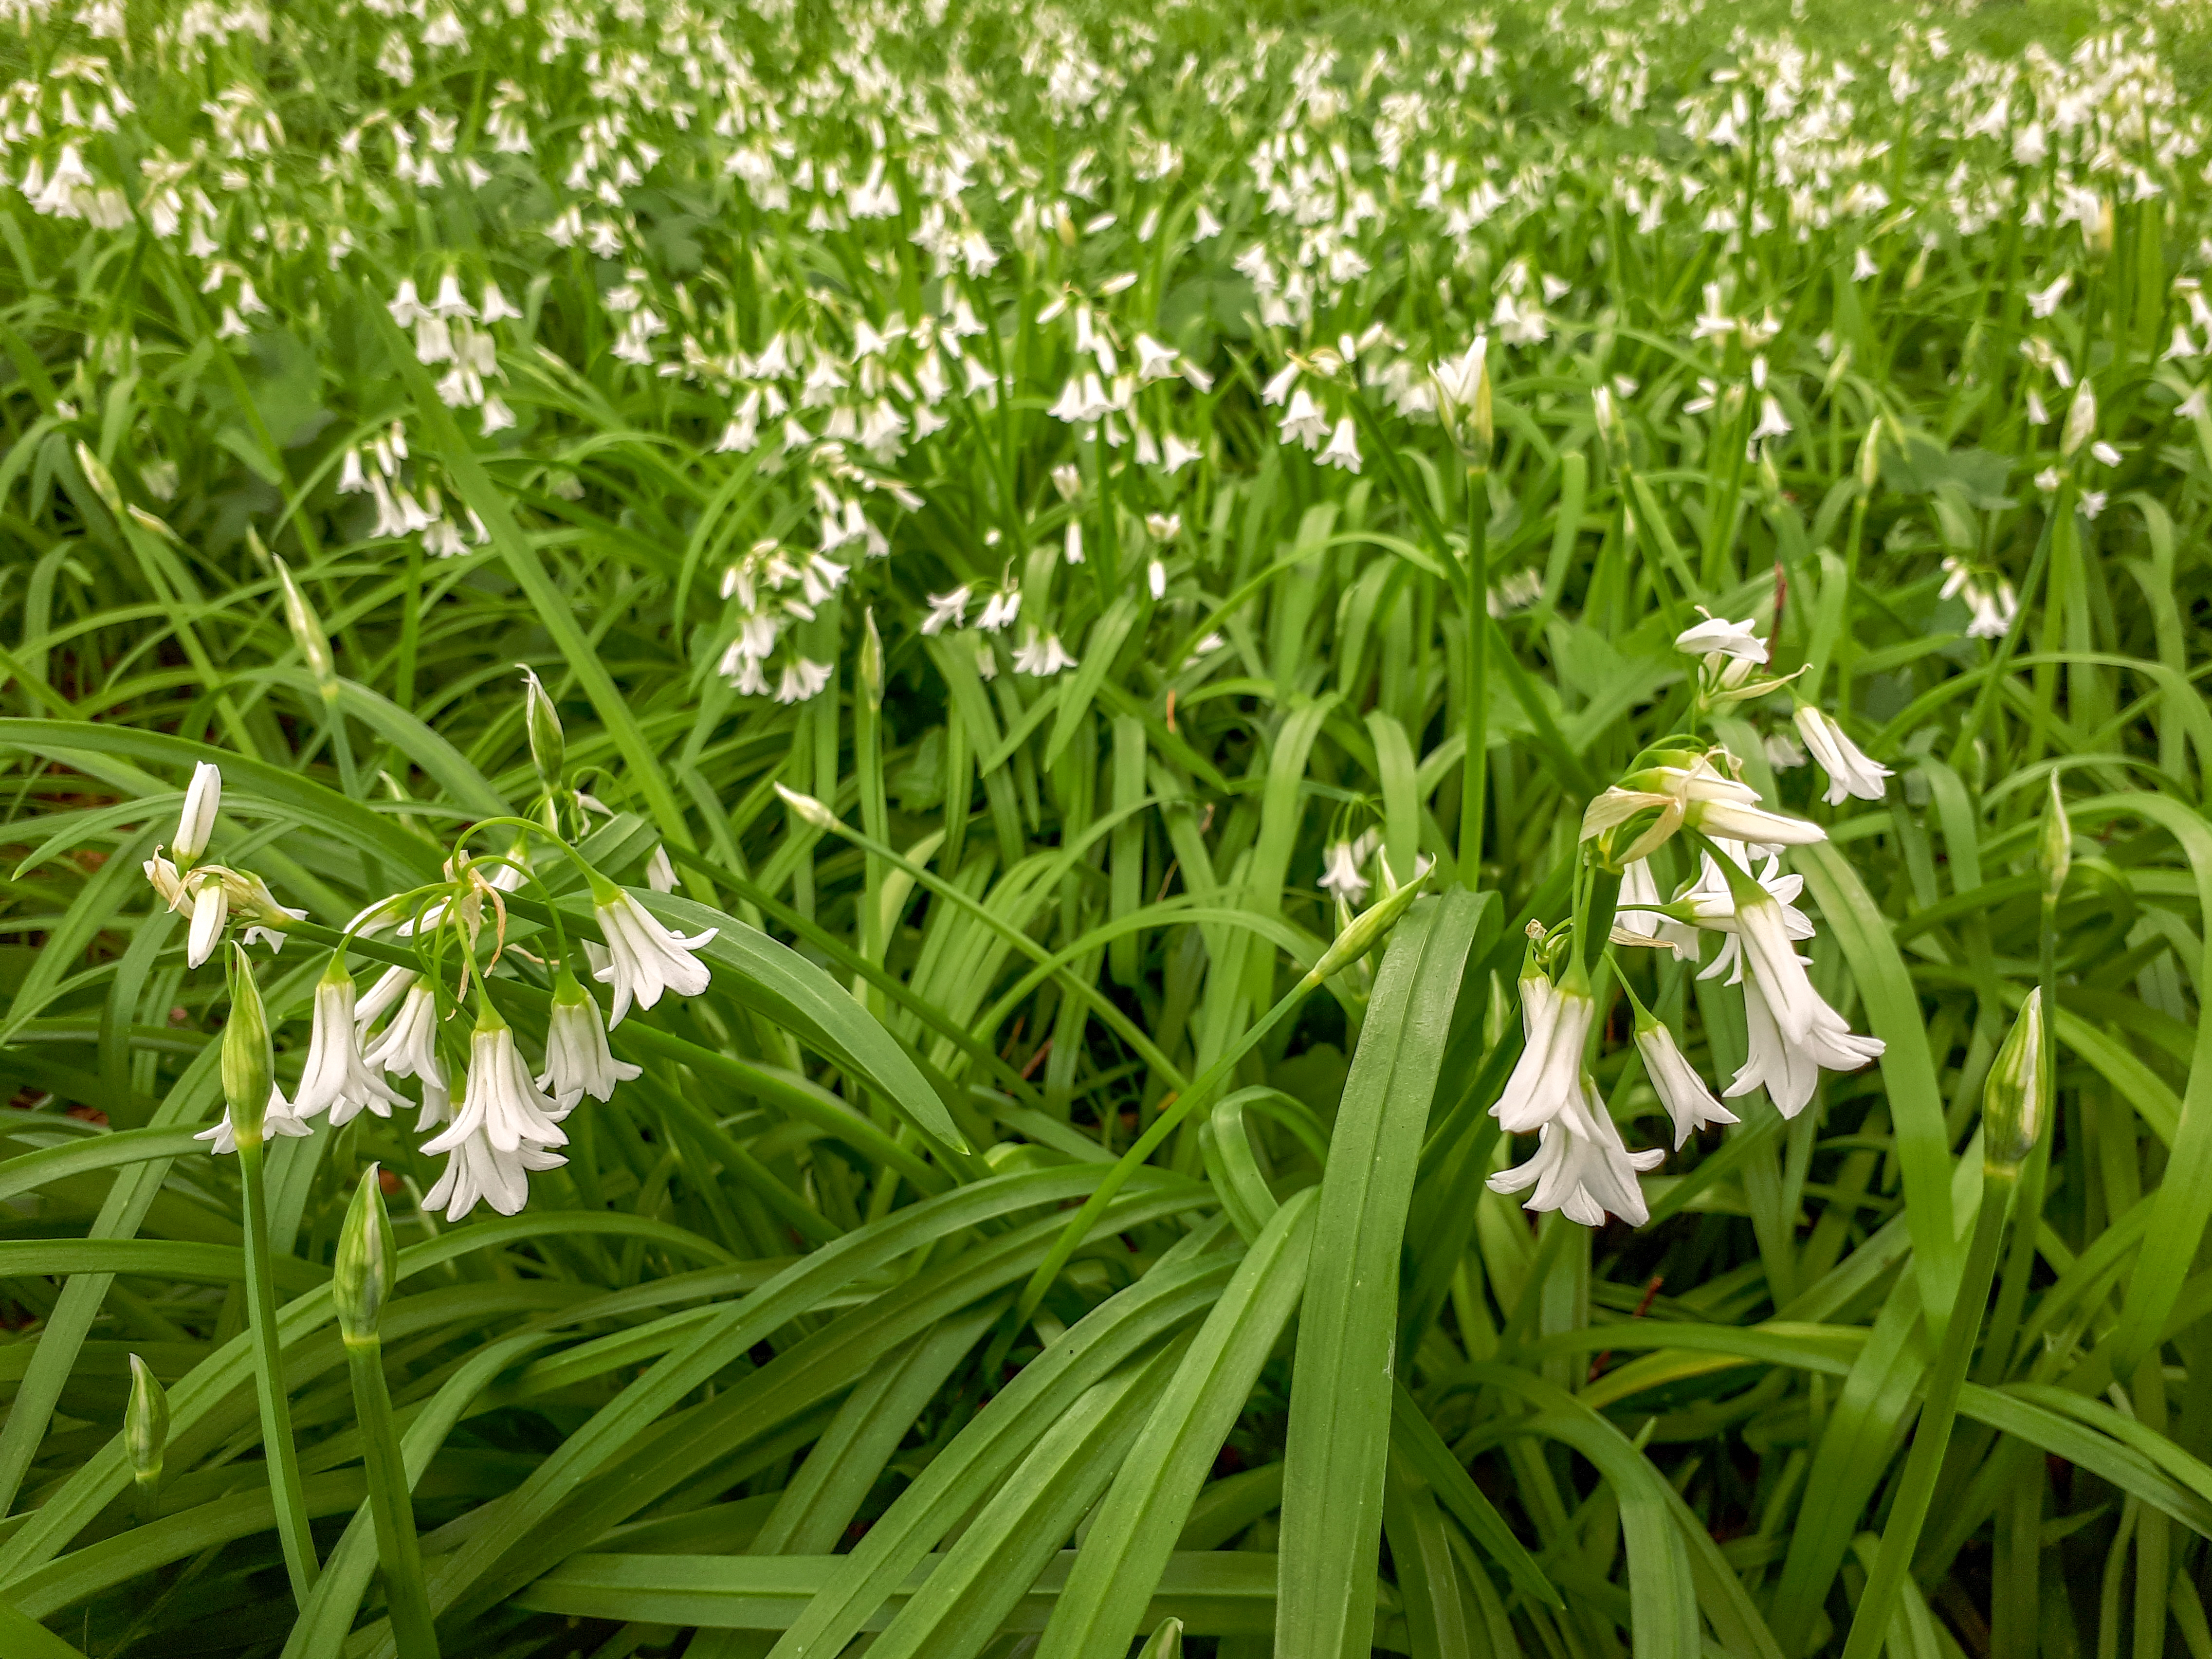 A Carpet of Three-Cornered Garlic Flowers in the Woods